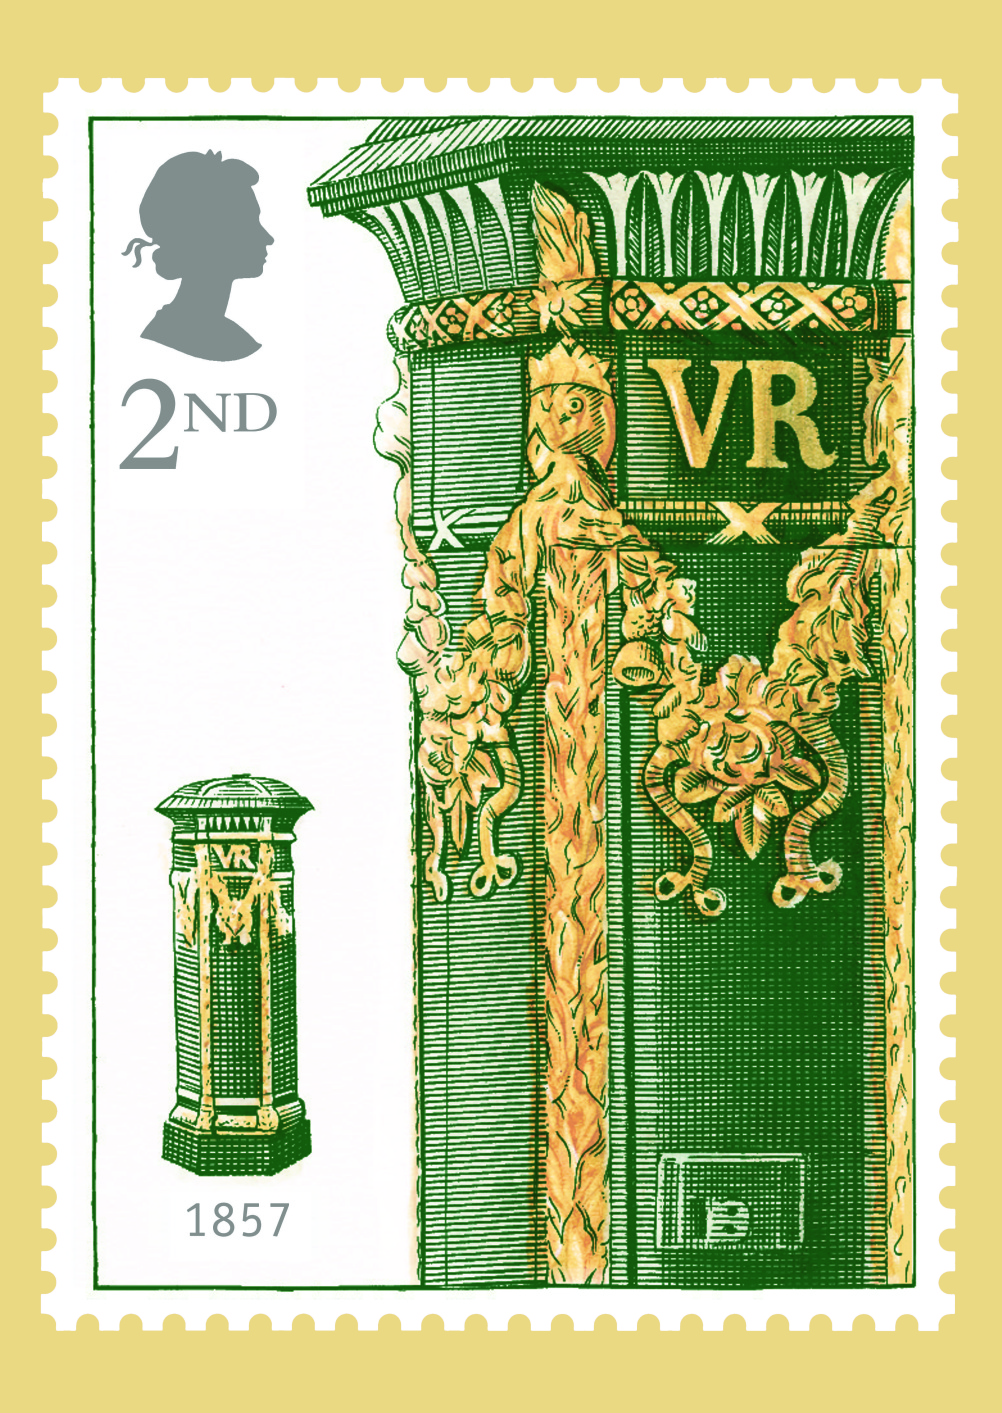 Special Stamps 50th anniversary Royal Mail first pillar box